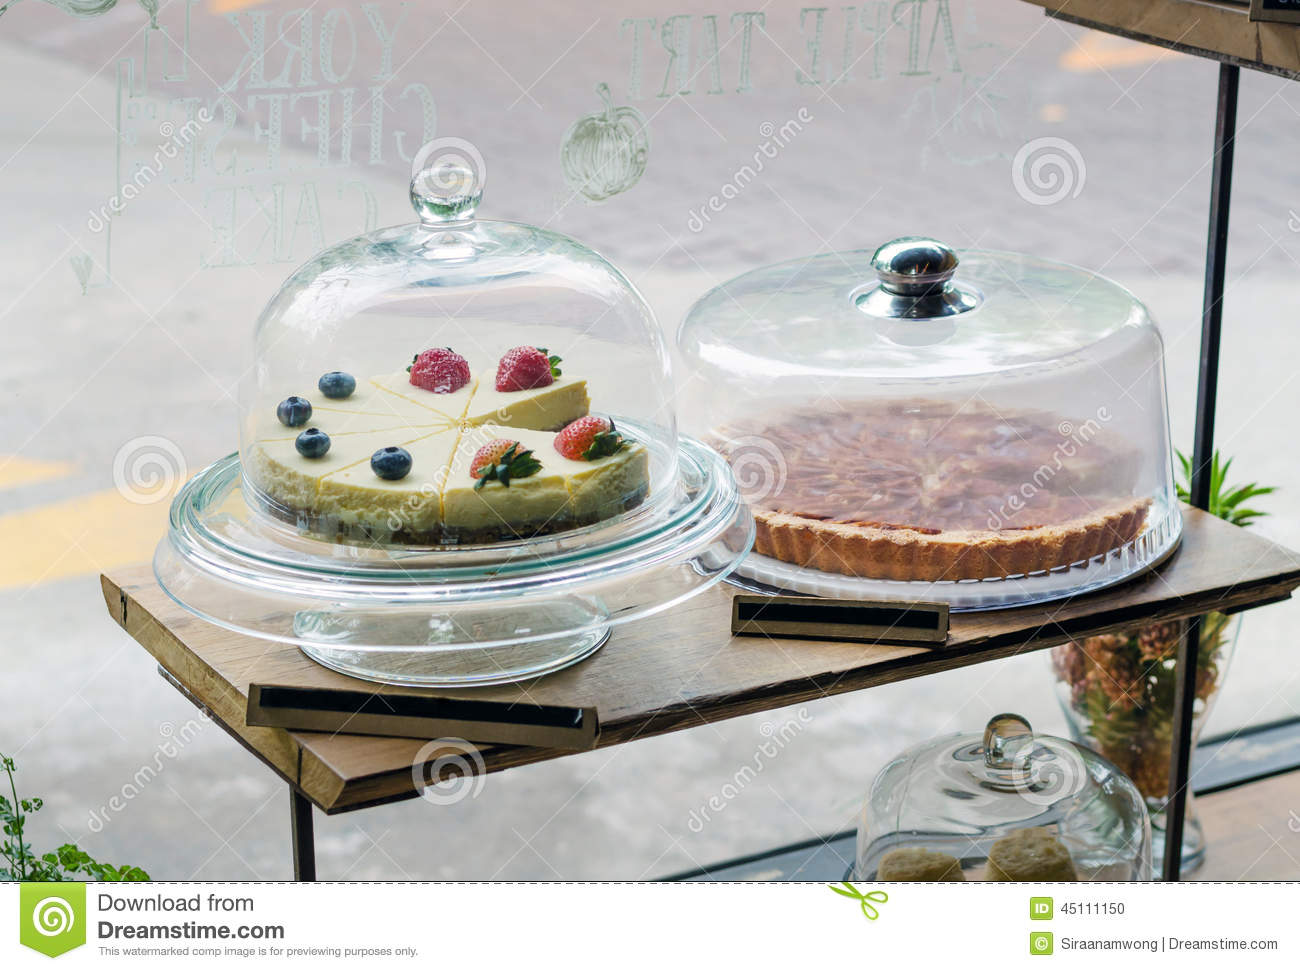 ... Photo: Strawberry, Blueberry cheesecake and apple tart on cake stand